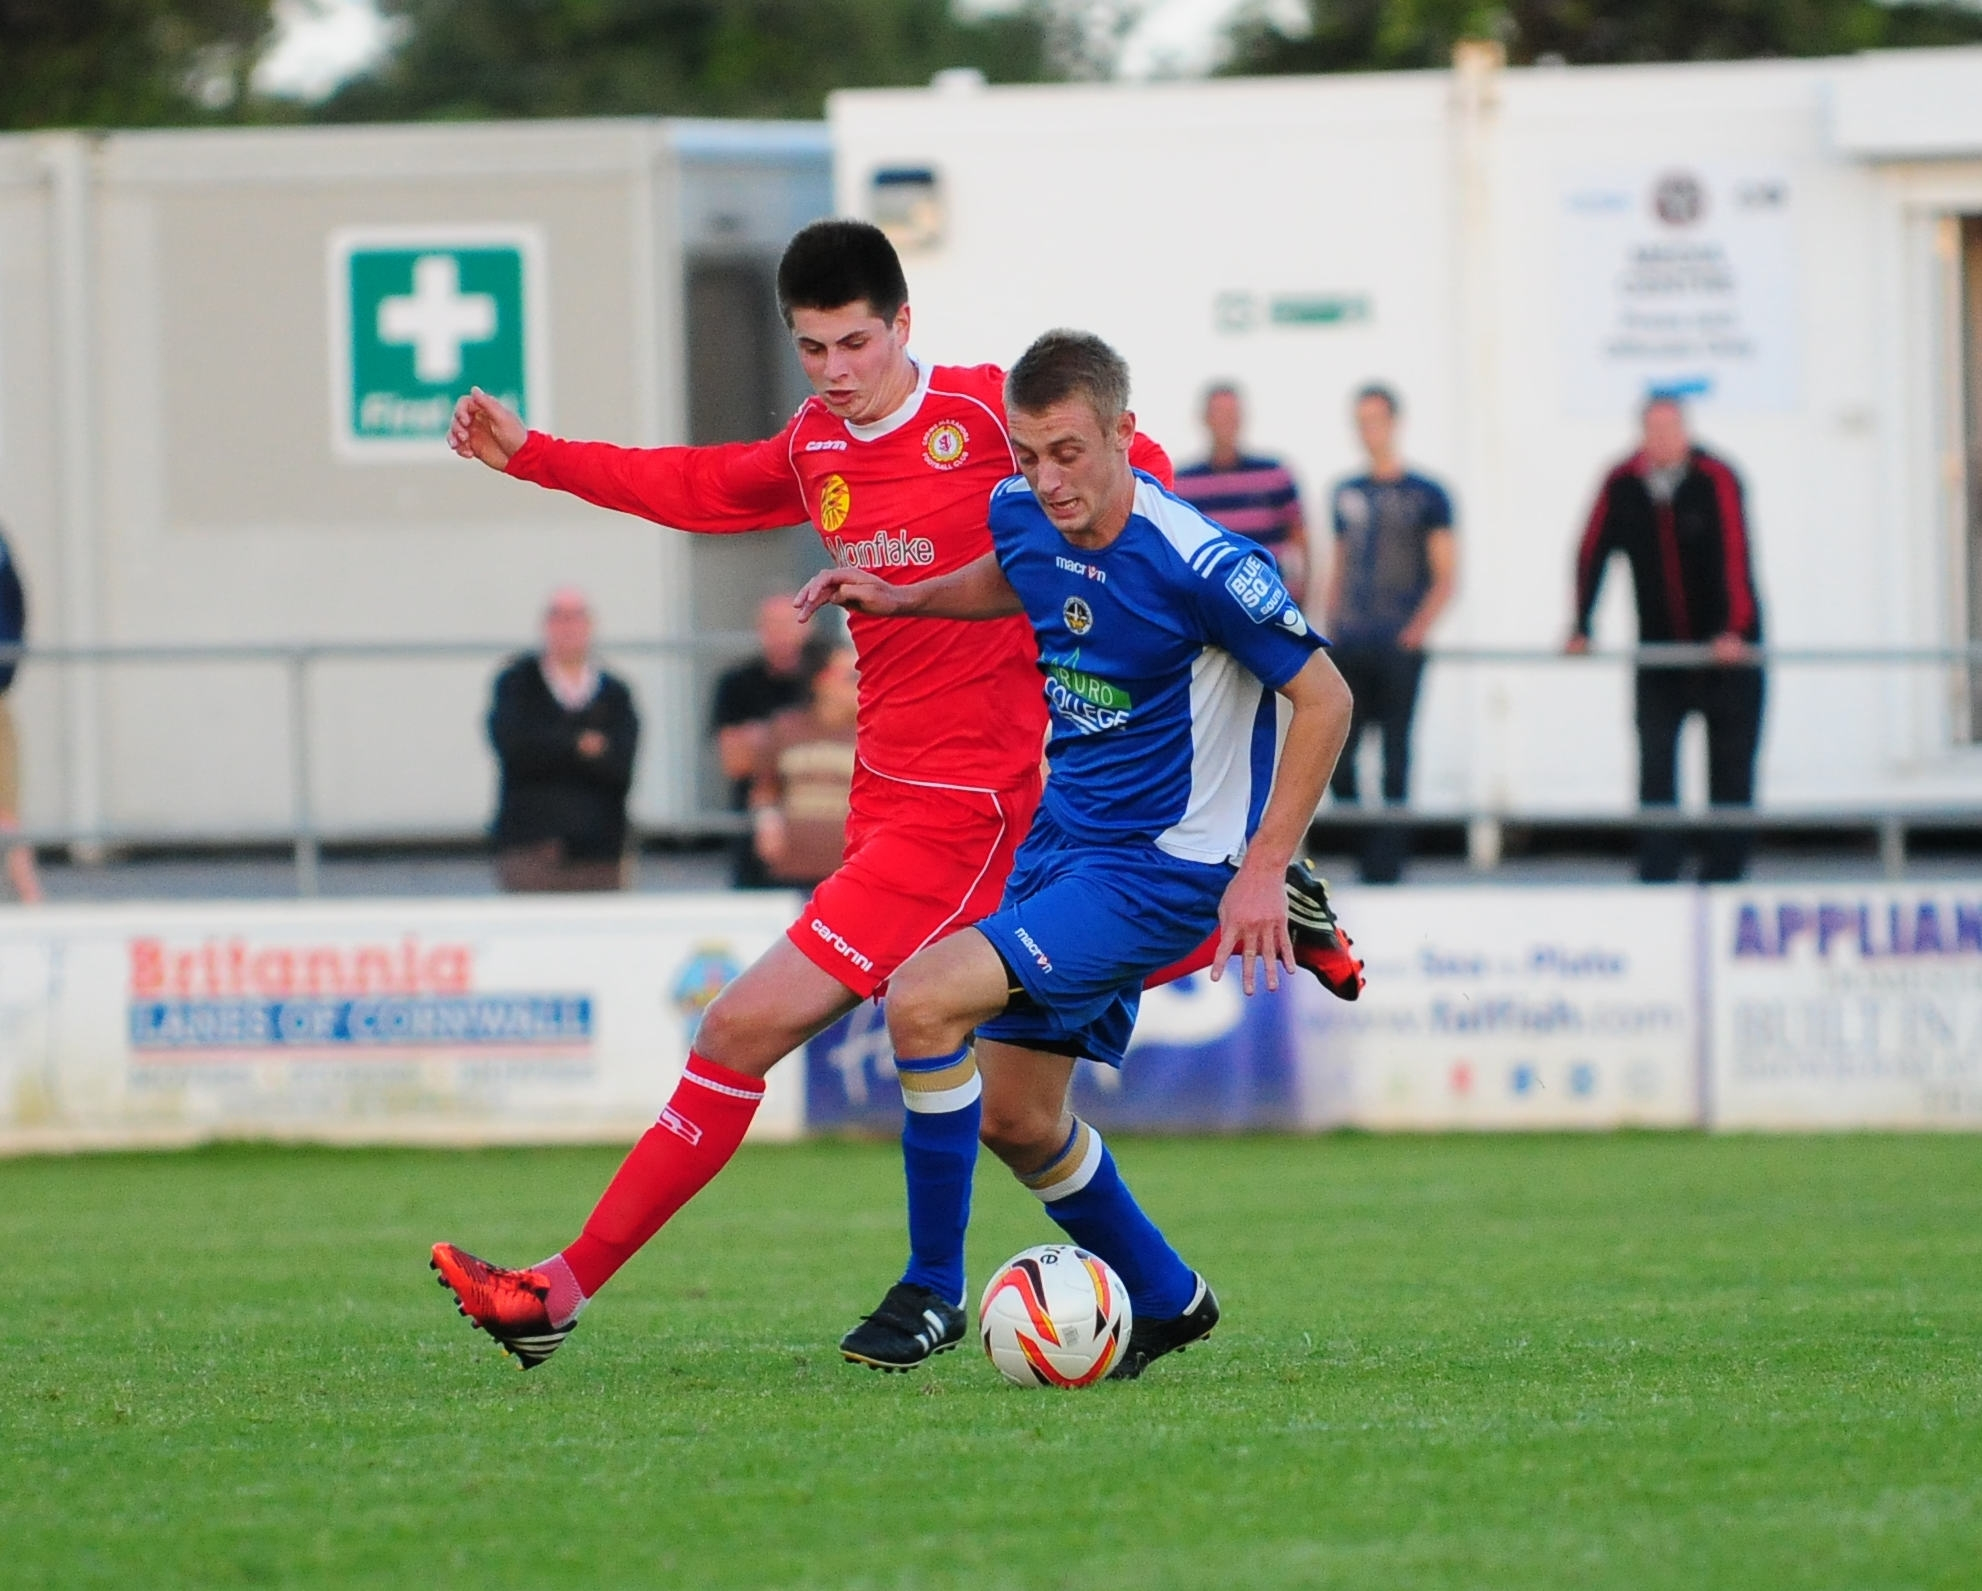 Goldsworthy chooses to stay at Helston